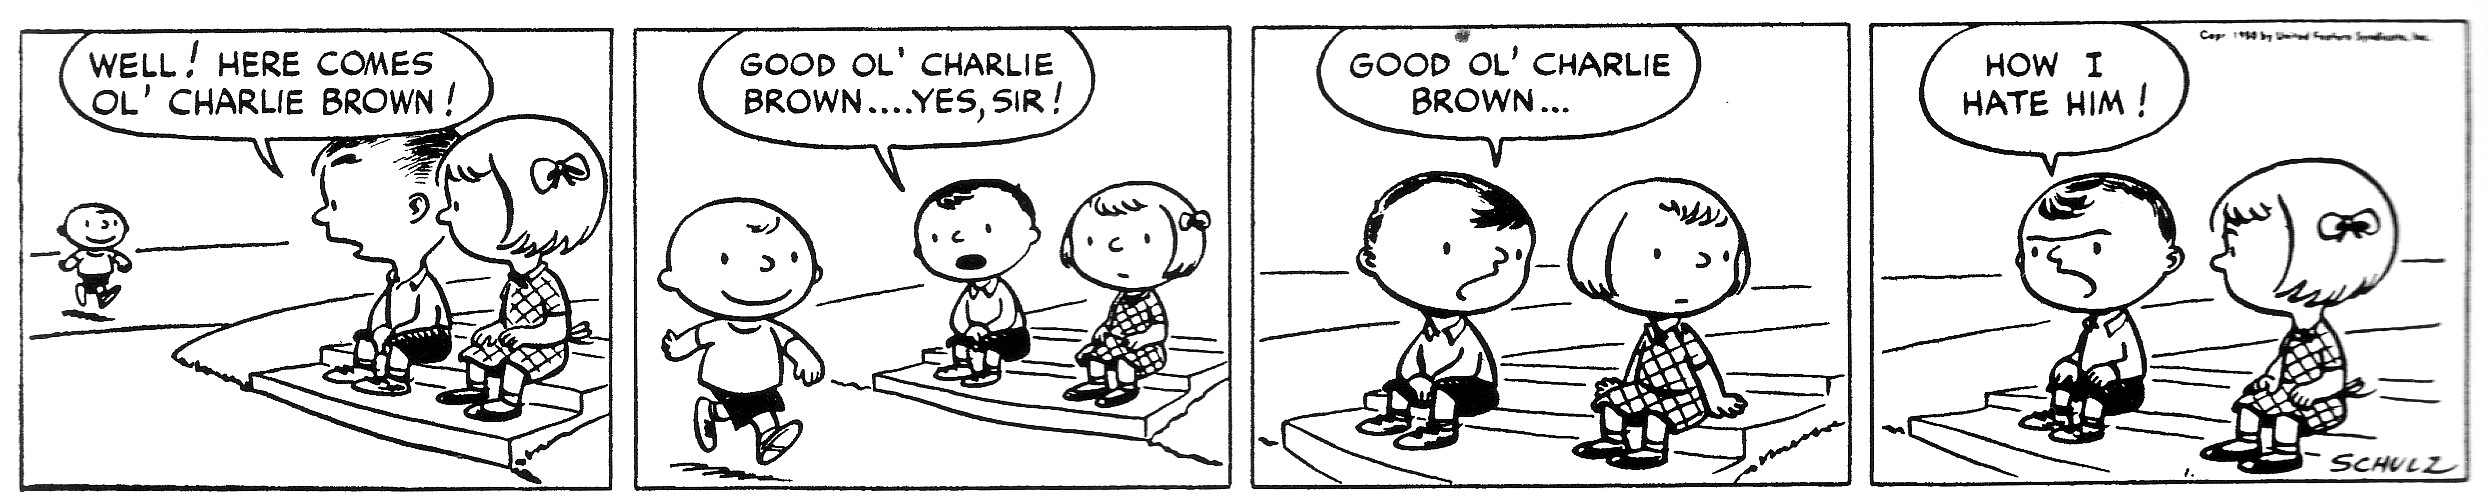 Good ole Charlie Brown.